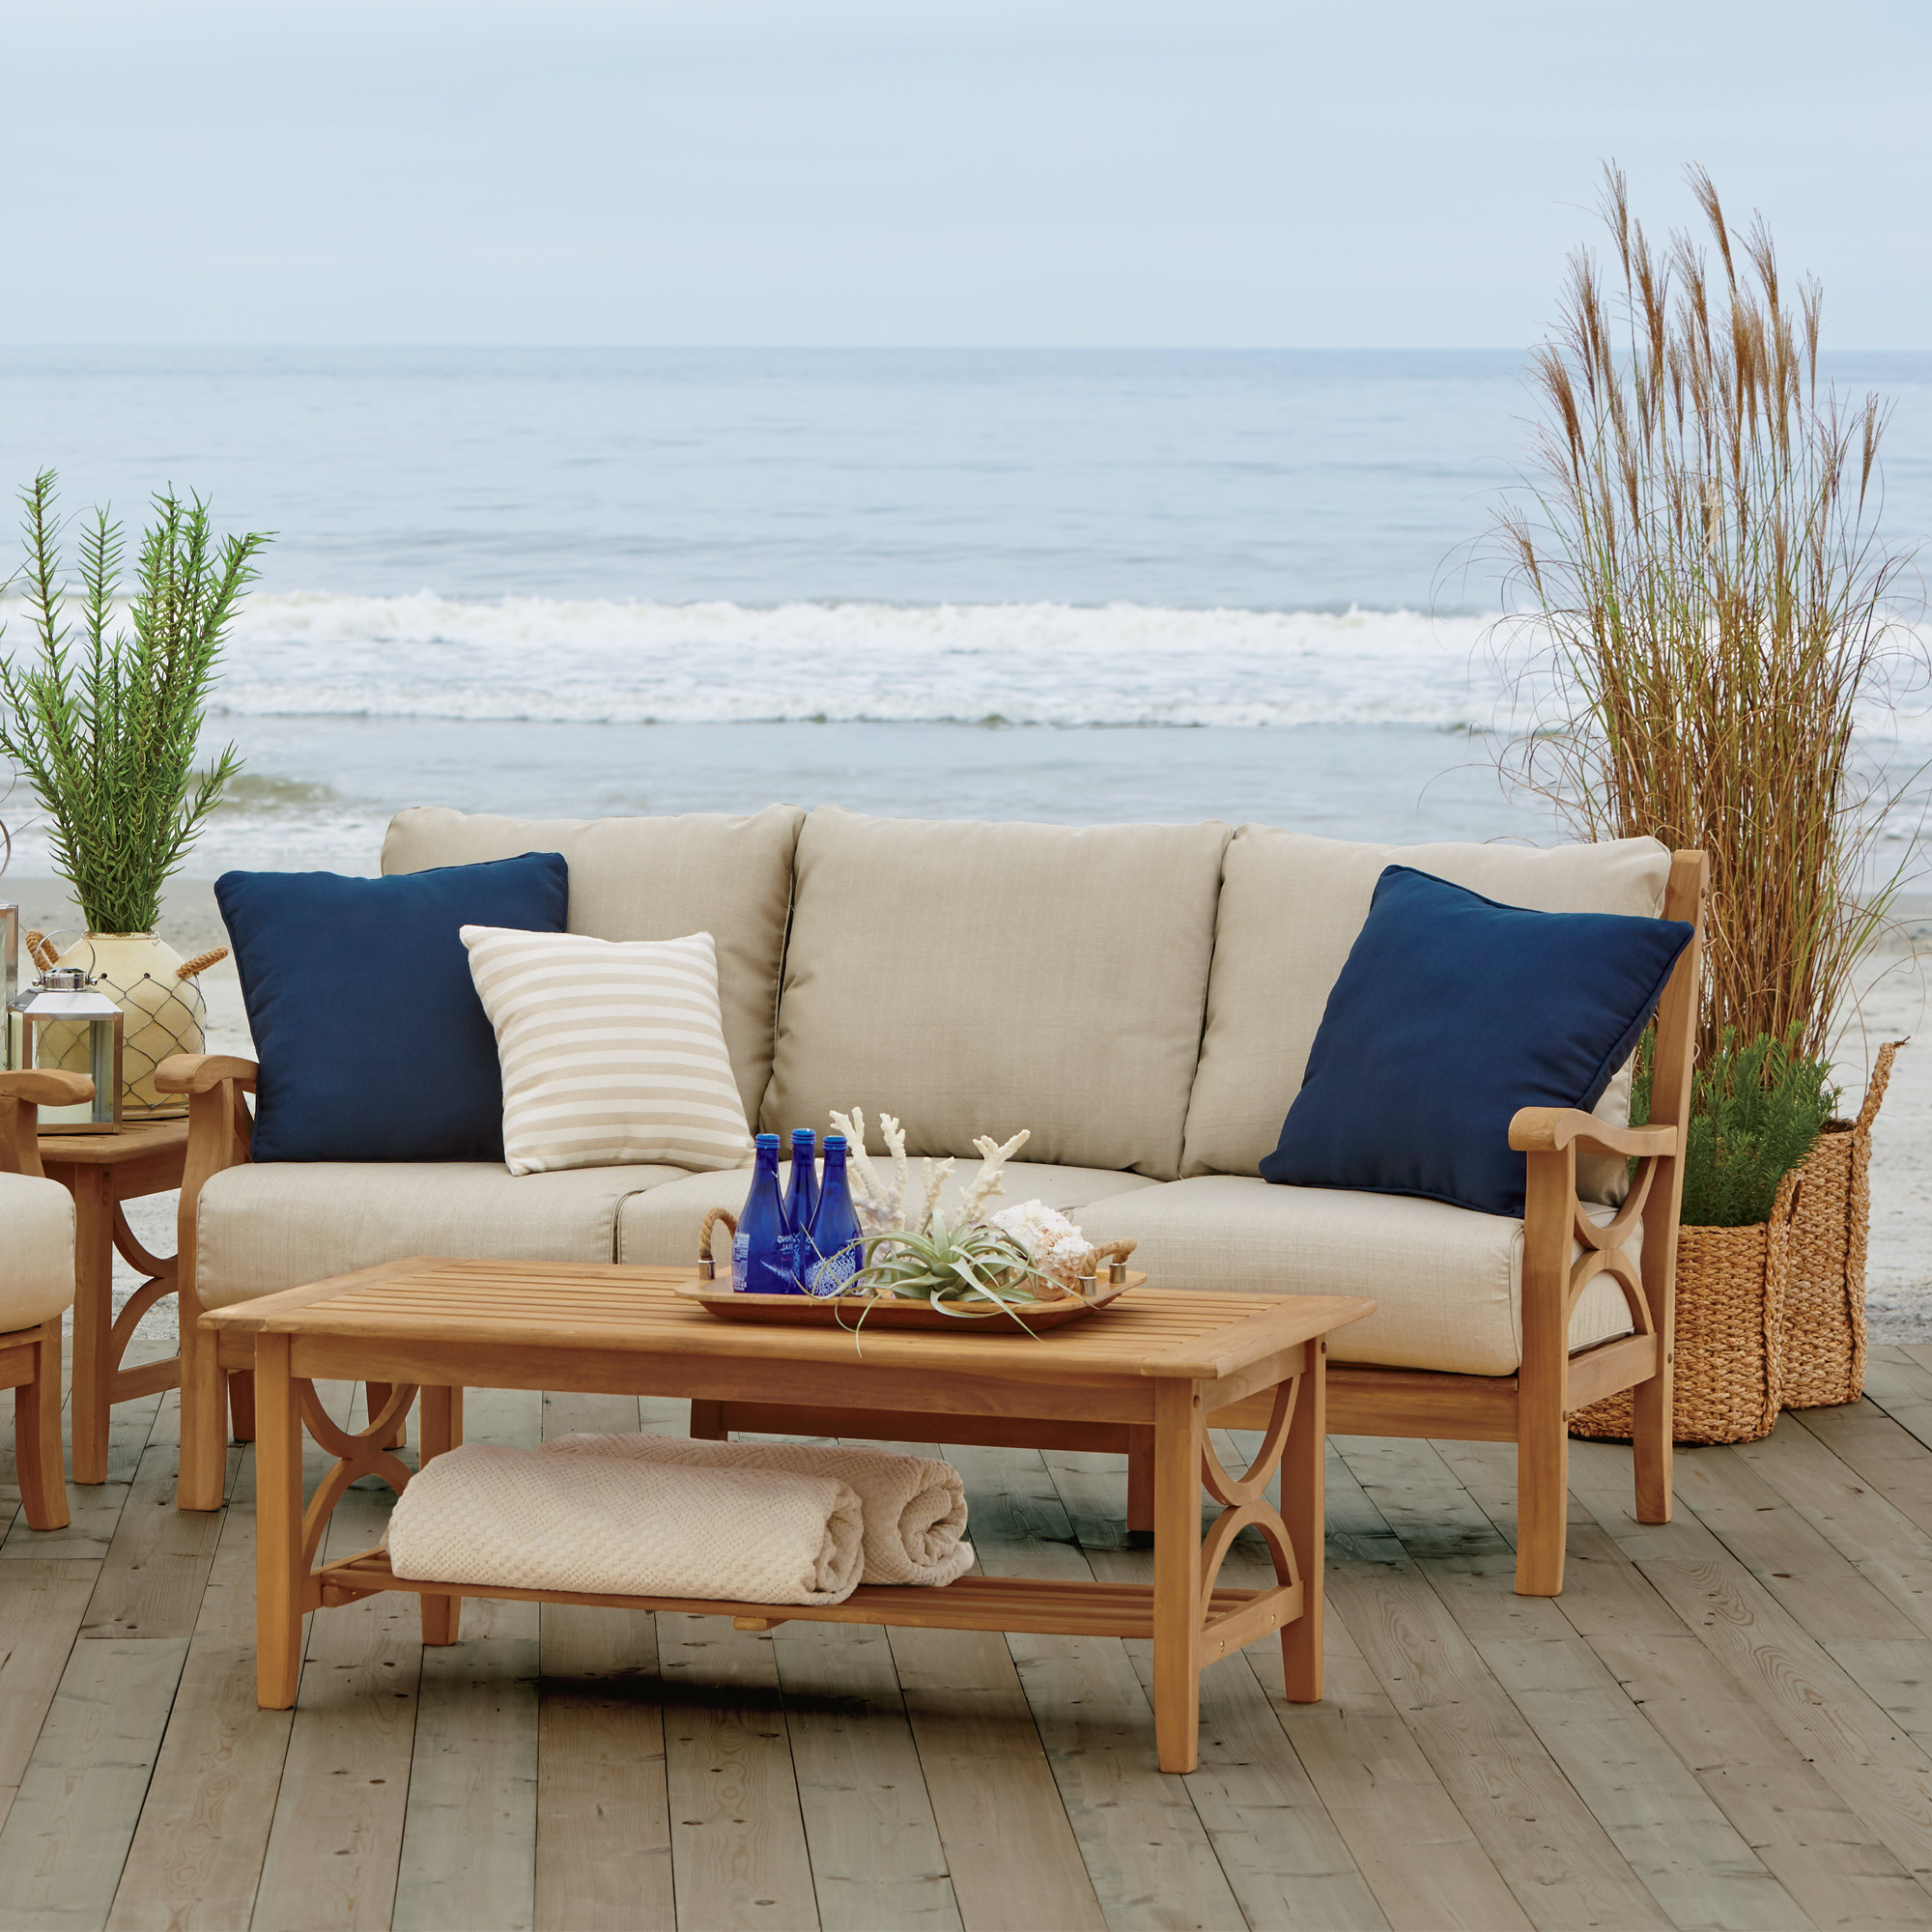 Antonia Teak Patio Sectionals With Cushions With Regard To Favorite Brunswick Teak Patio Sofa With Cushions (View 9 of 25)